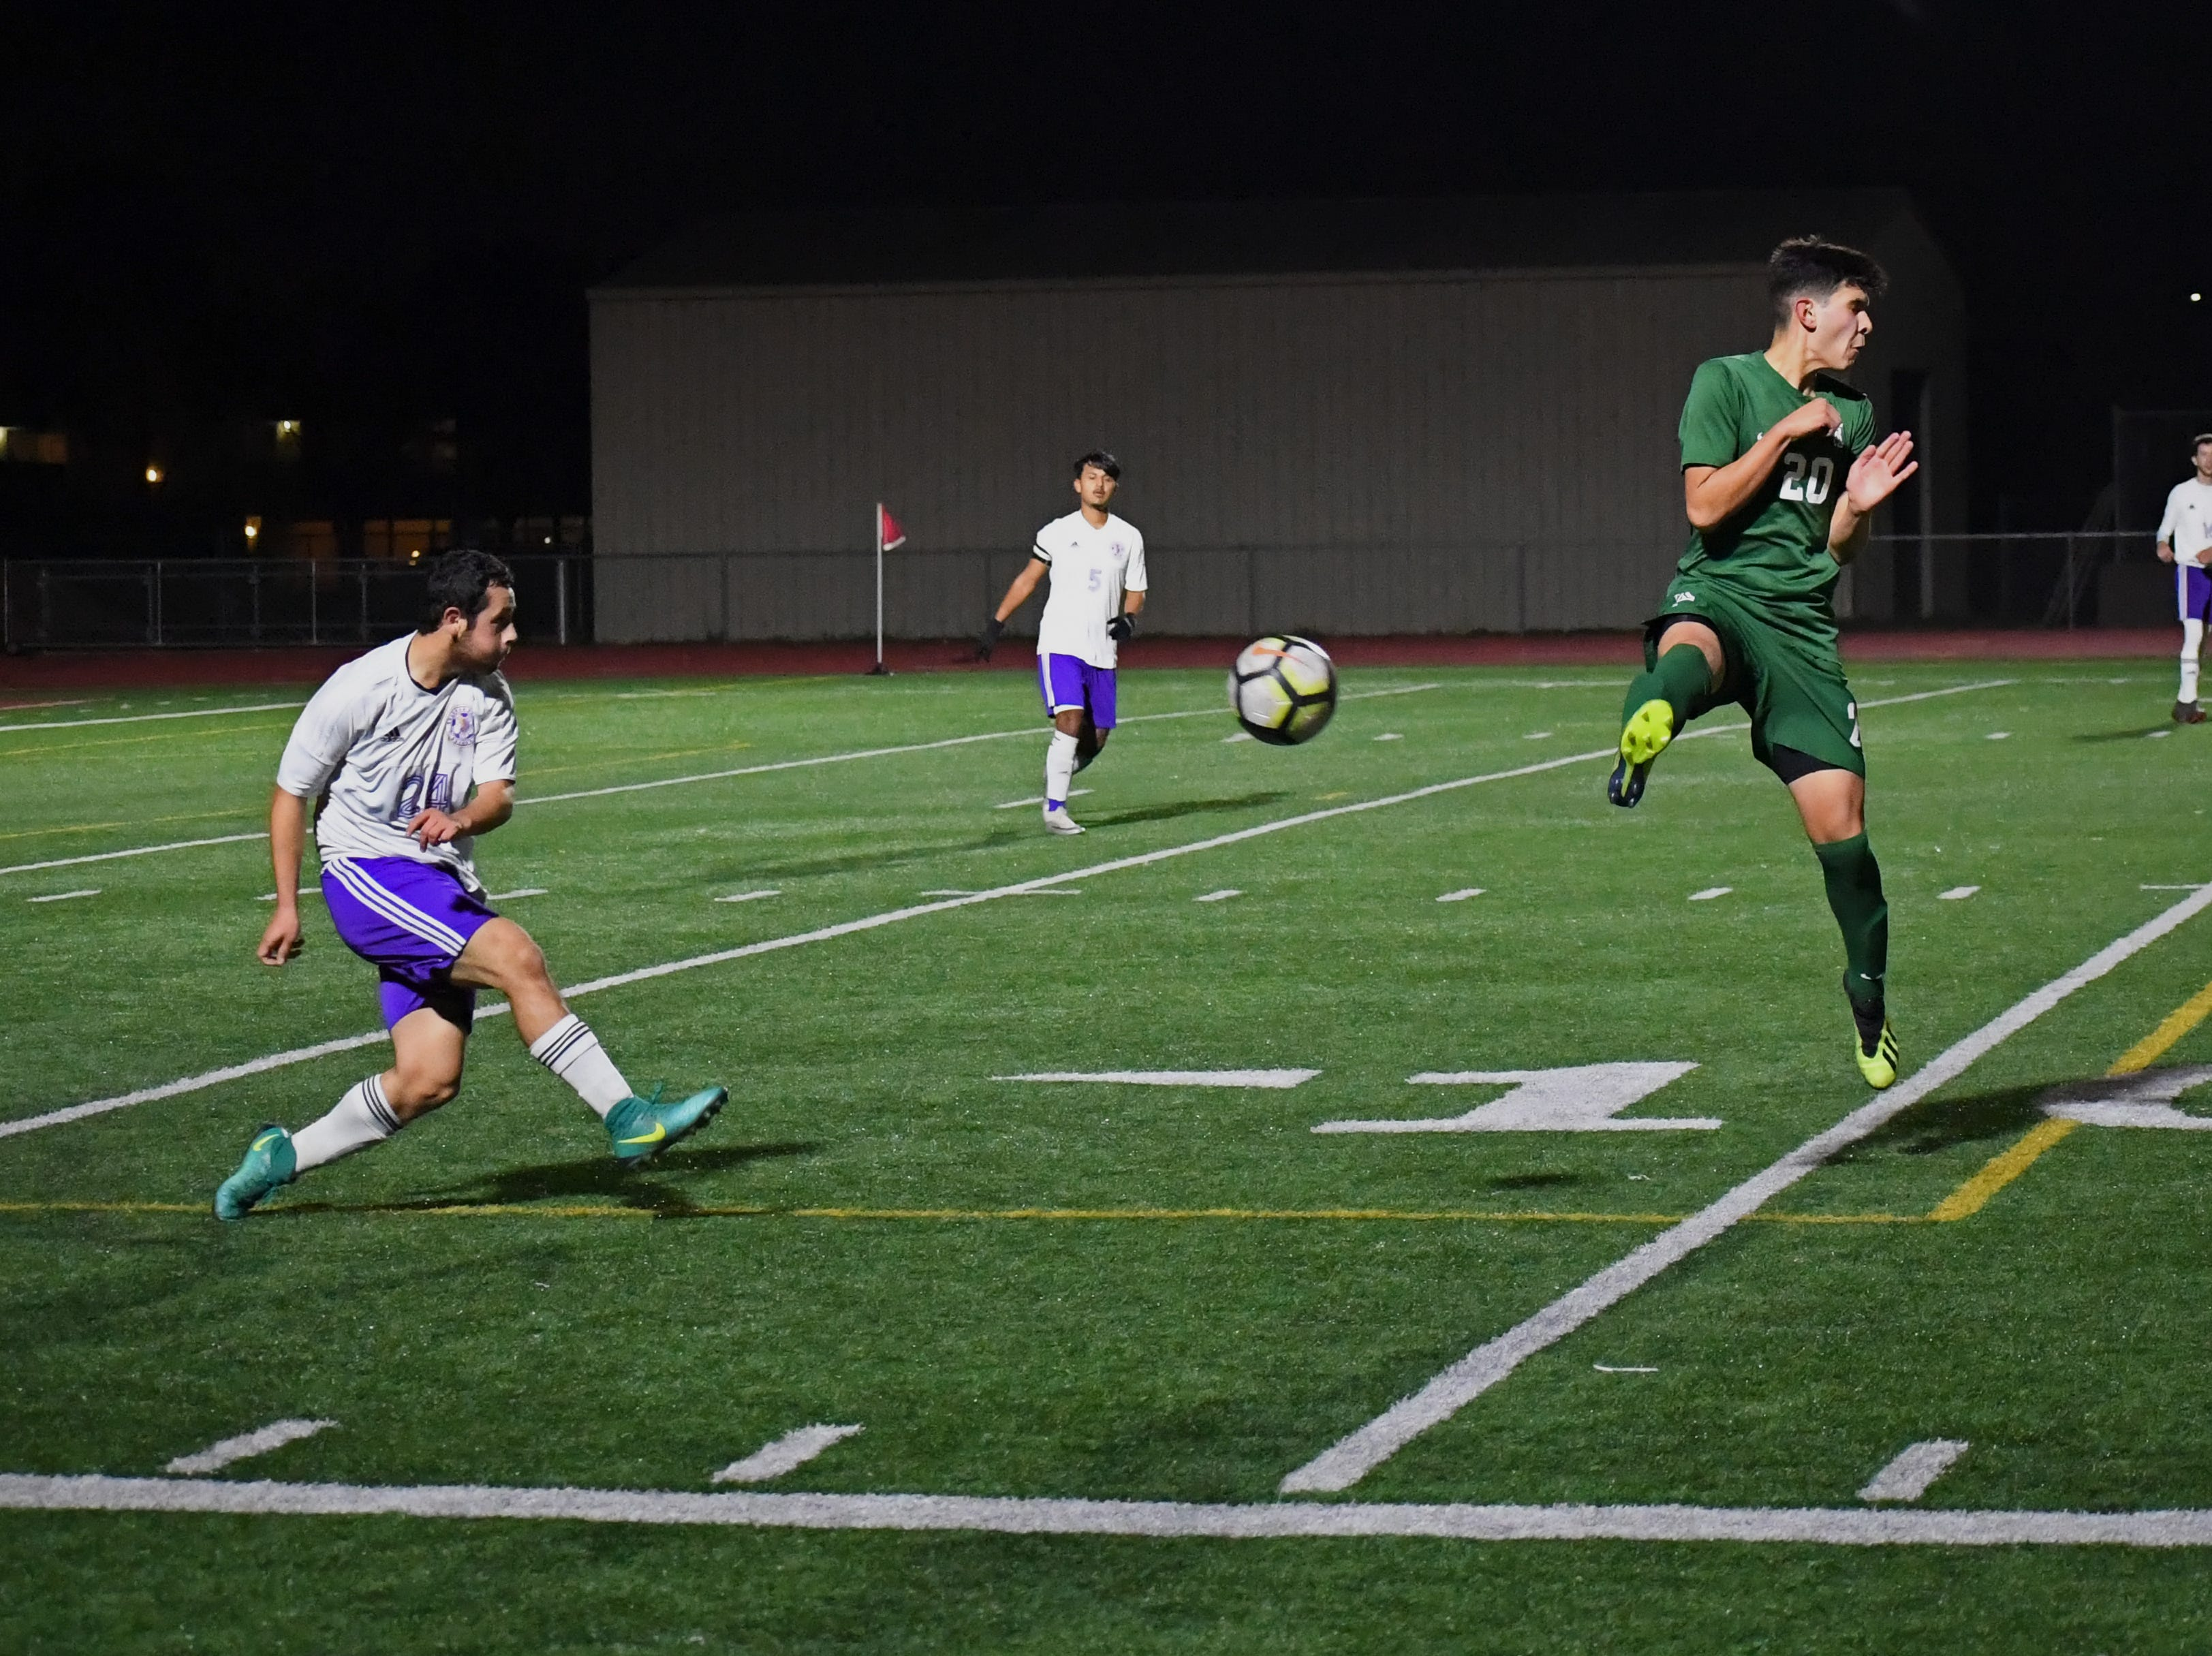 Alisal forward Abraham Montaño (20) braces from blocking a kick.